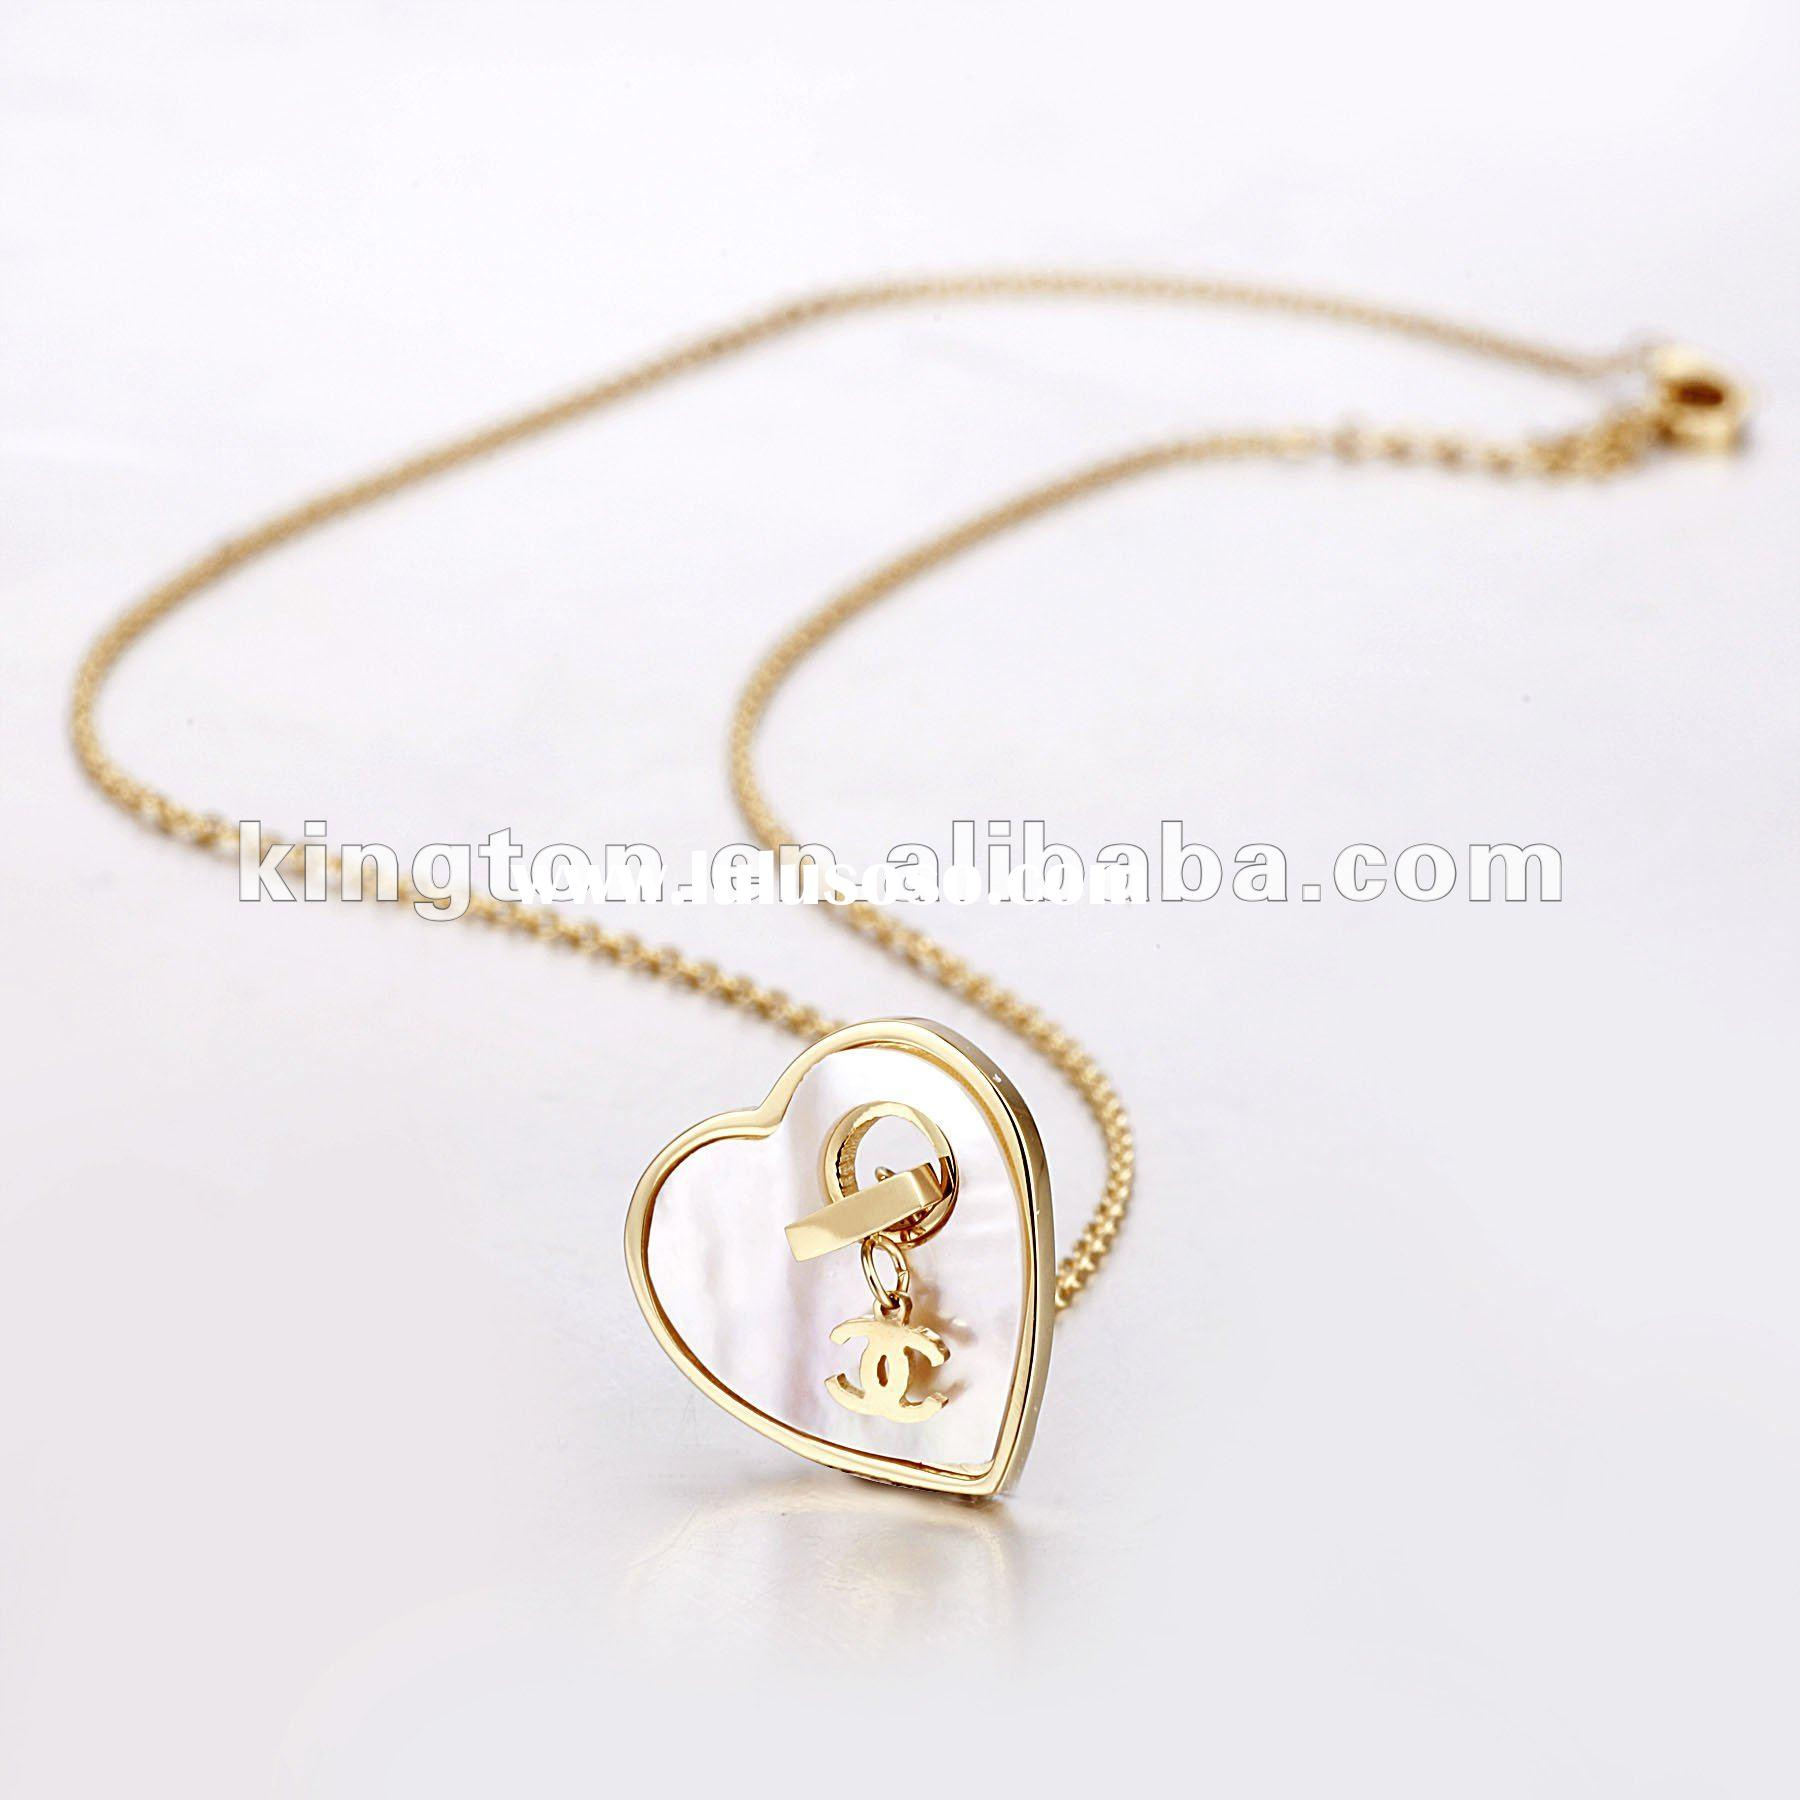 gold jewelery pendant necklaces for men